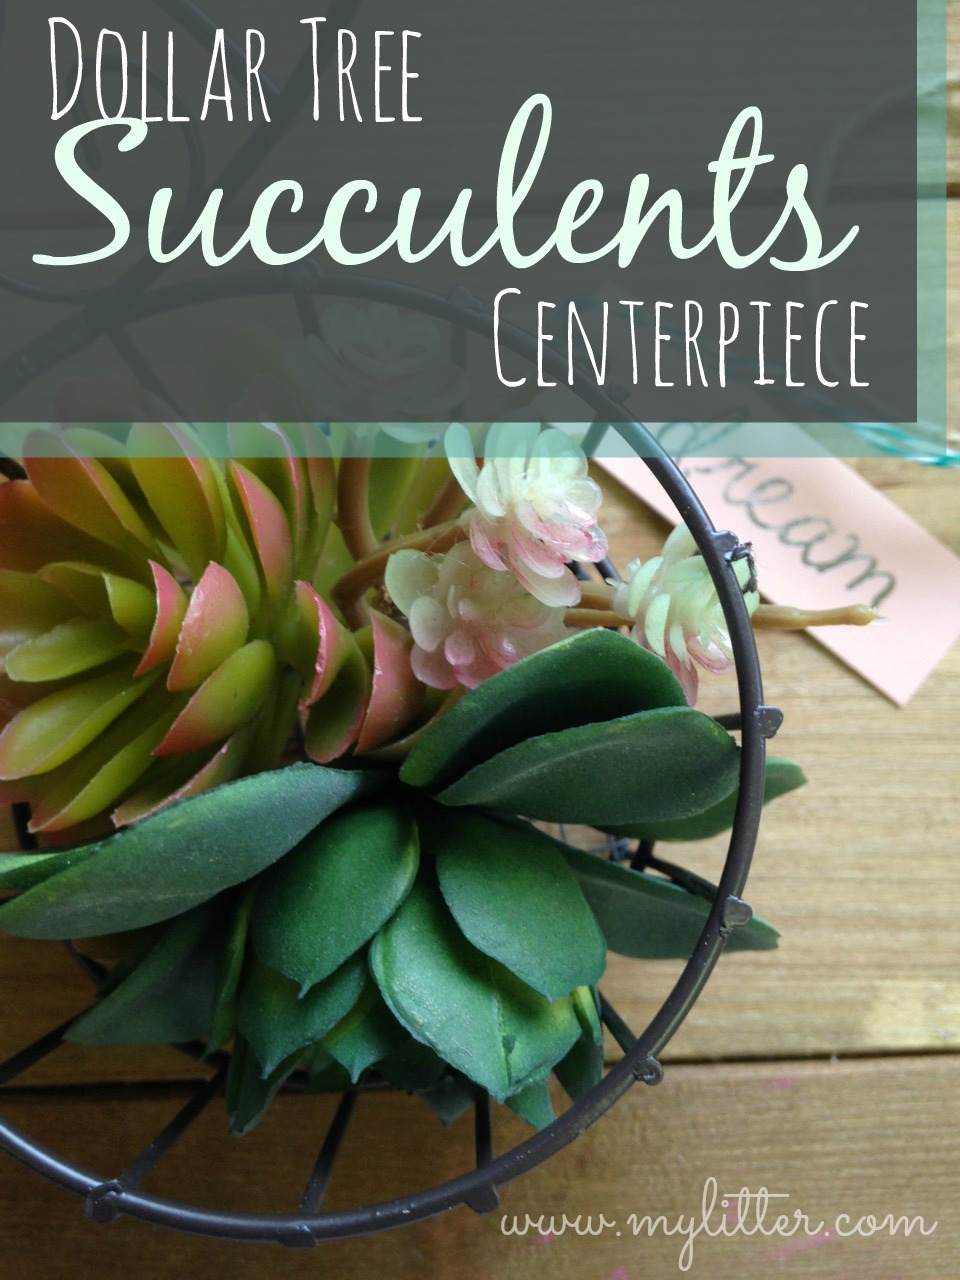 this dollar tree succulents centerpiece is super cute!